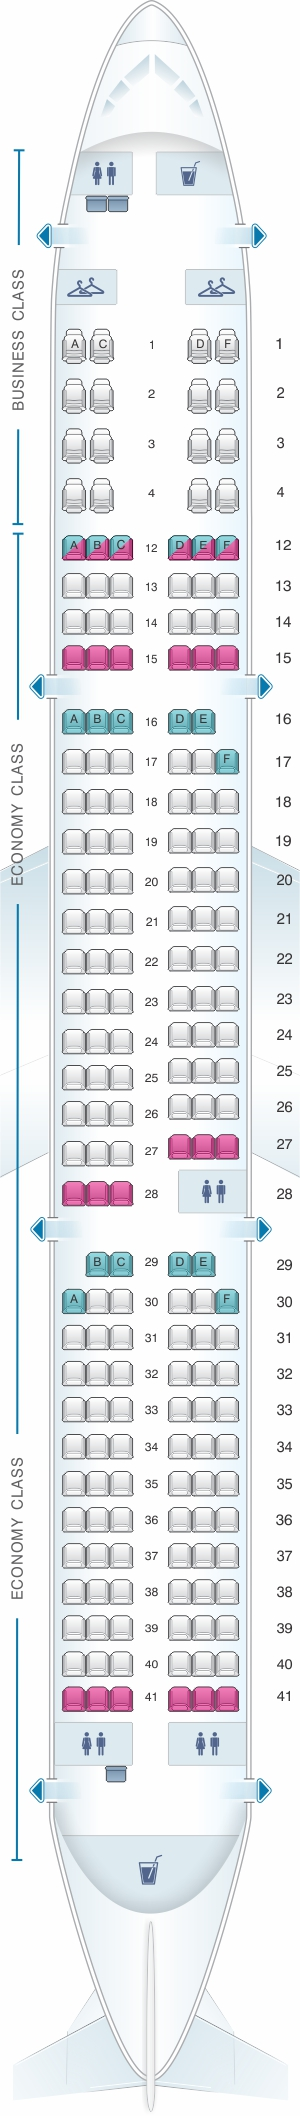 Seat map for Air Canada Airbus A321 200